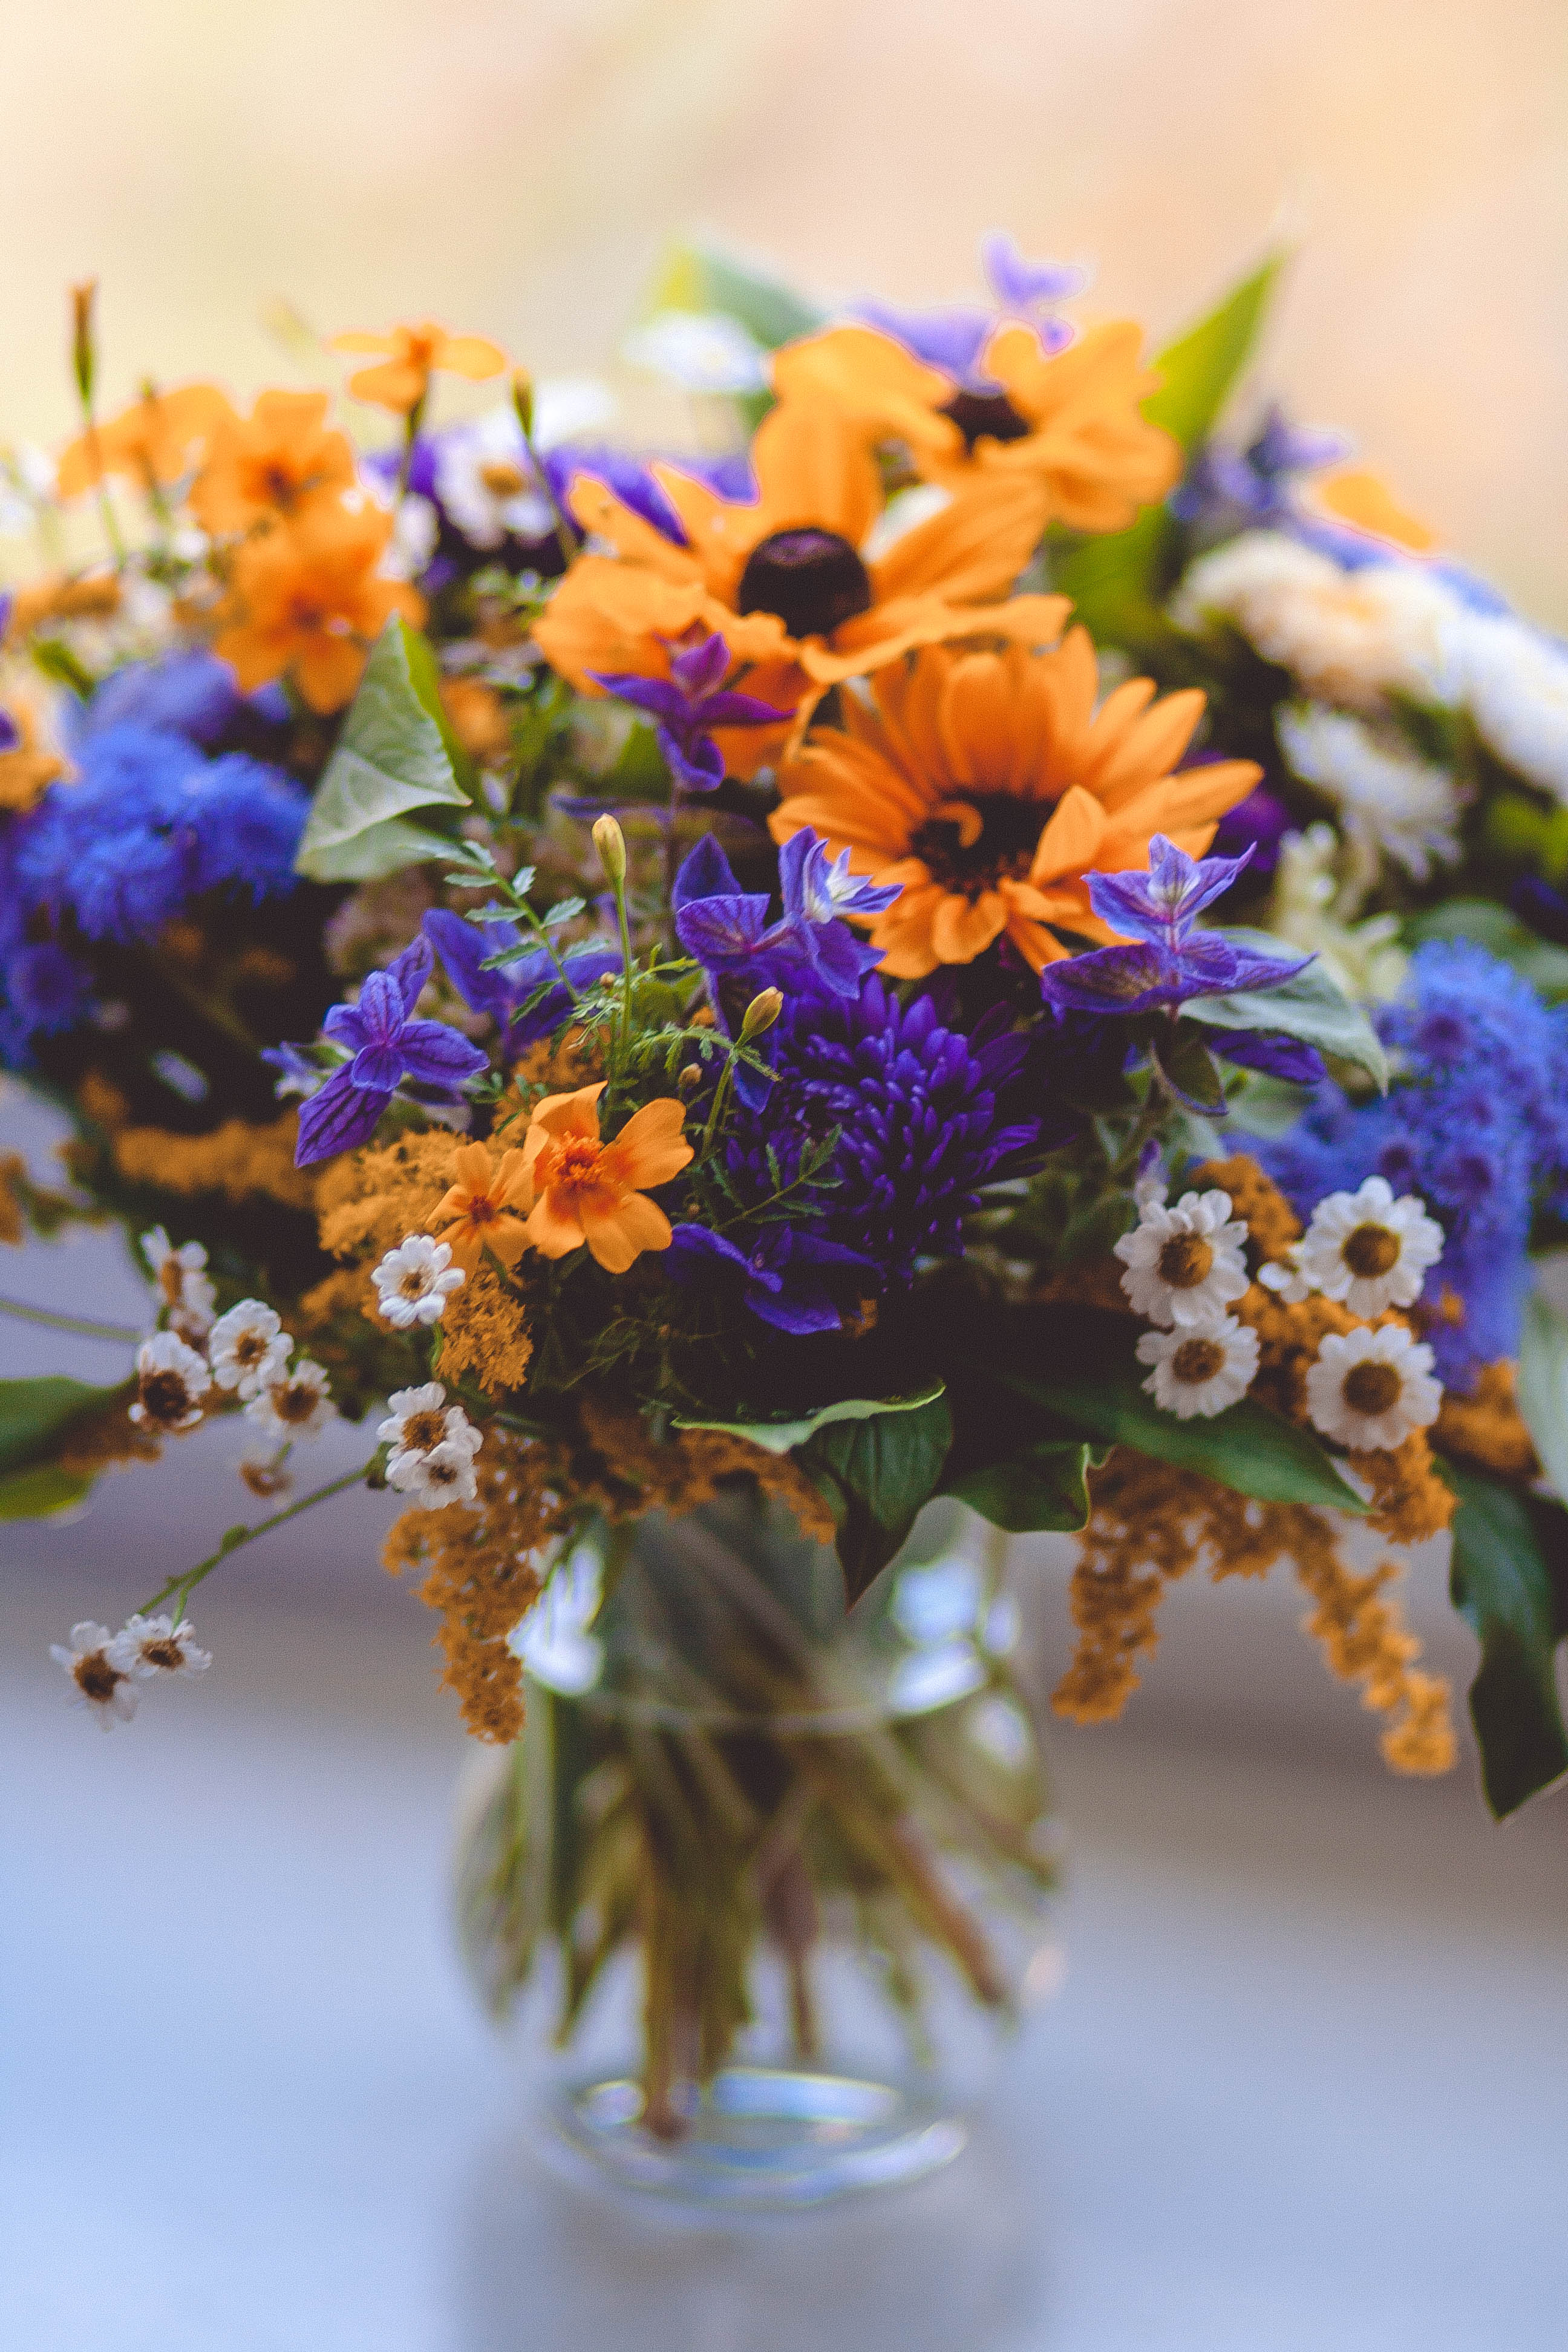 Microsoft Wallpaper Fall Orange Purple Green And White Flowers Decor 183 Free Stock Photo